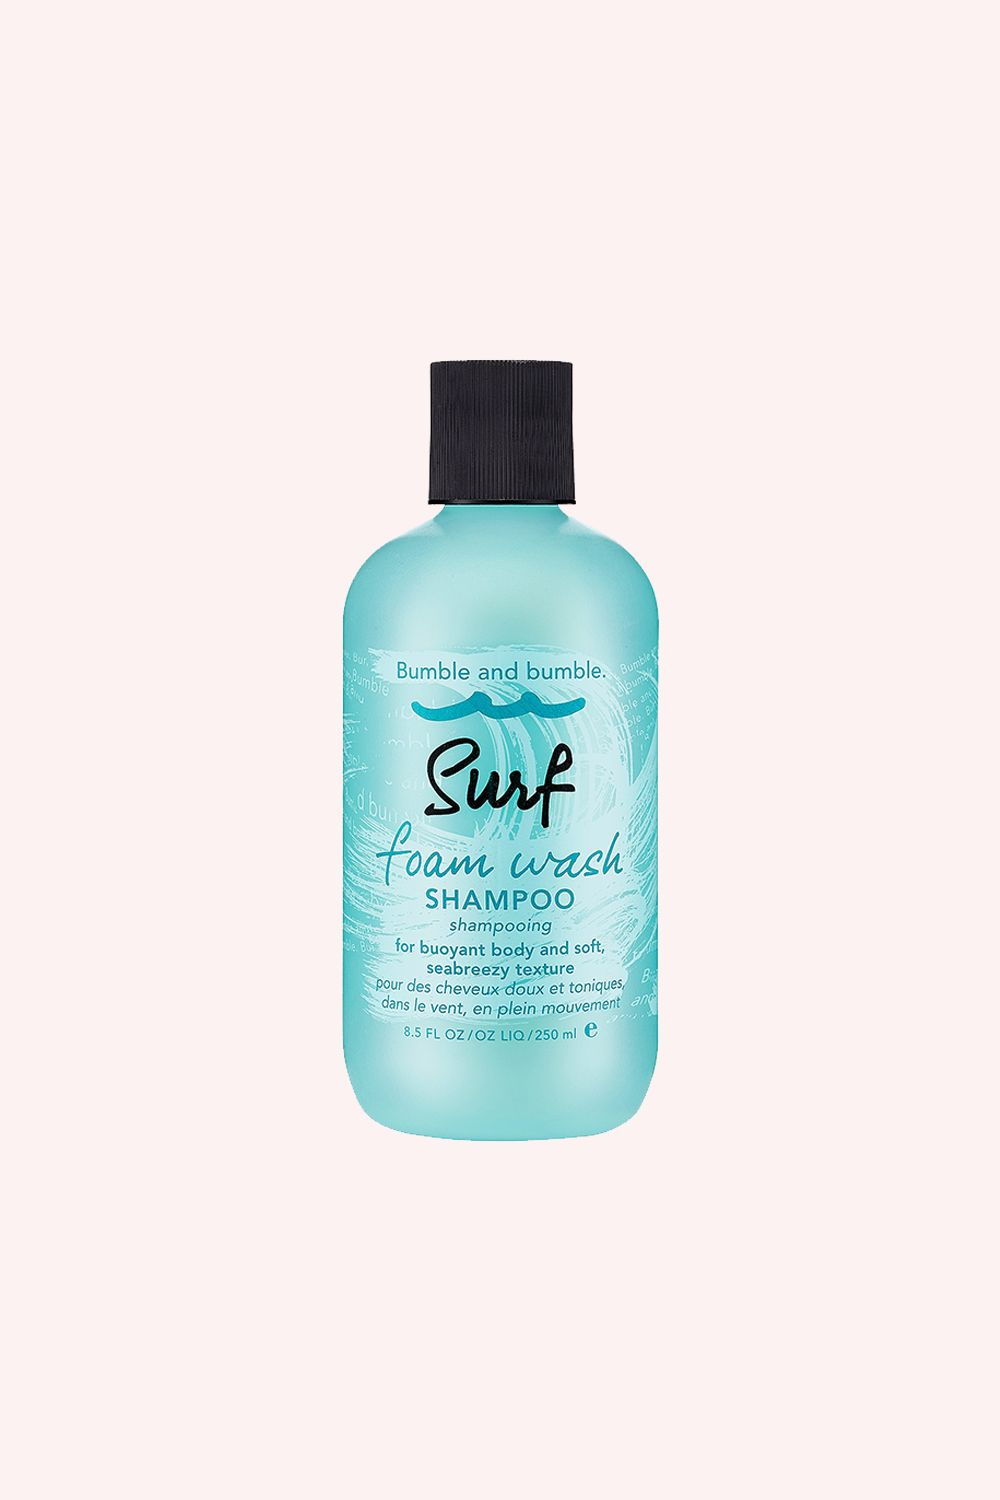 "<p>Congrats! You basically have the wavy hair of beach-lovers' dreams. At least, you could, if you use the correct products in the shower, like a texture-enhancing shampoo that dissolves buildup and oil while amping up fine, flat waves.</p><p><i data-redactor-tag=""i"">Bumble and Bumble Surf Foam Wash Shampoo</i>, $25</p><p><strong data-redactor-tag=""strong"">BUY IT: <a href=""http://www.sephora.com/surf-foam-wash-shampoo-P378842?"">sephora.com</a>. </strong></p>"